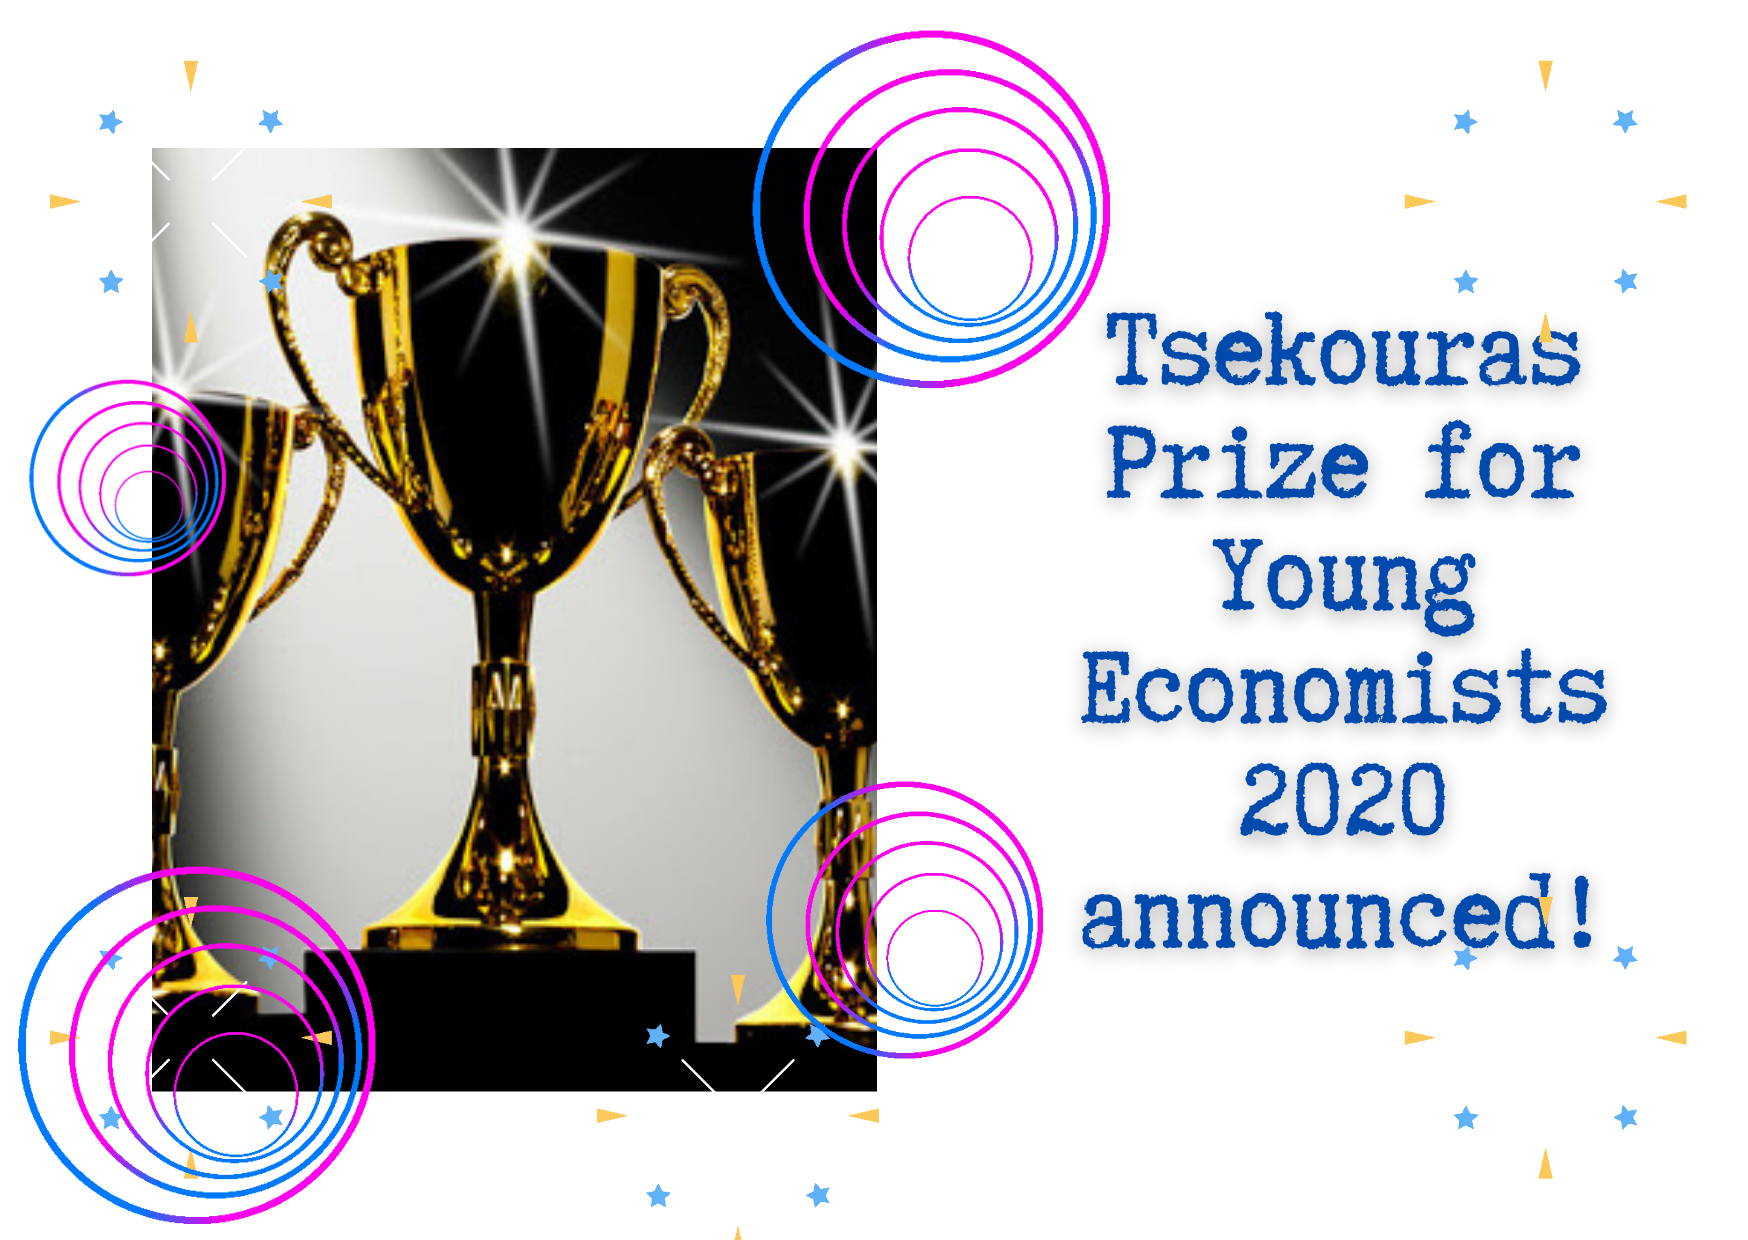 Tsekoras Prize Winner for Young Economists 2020 announced!